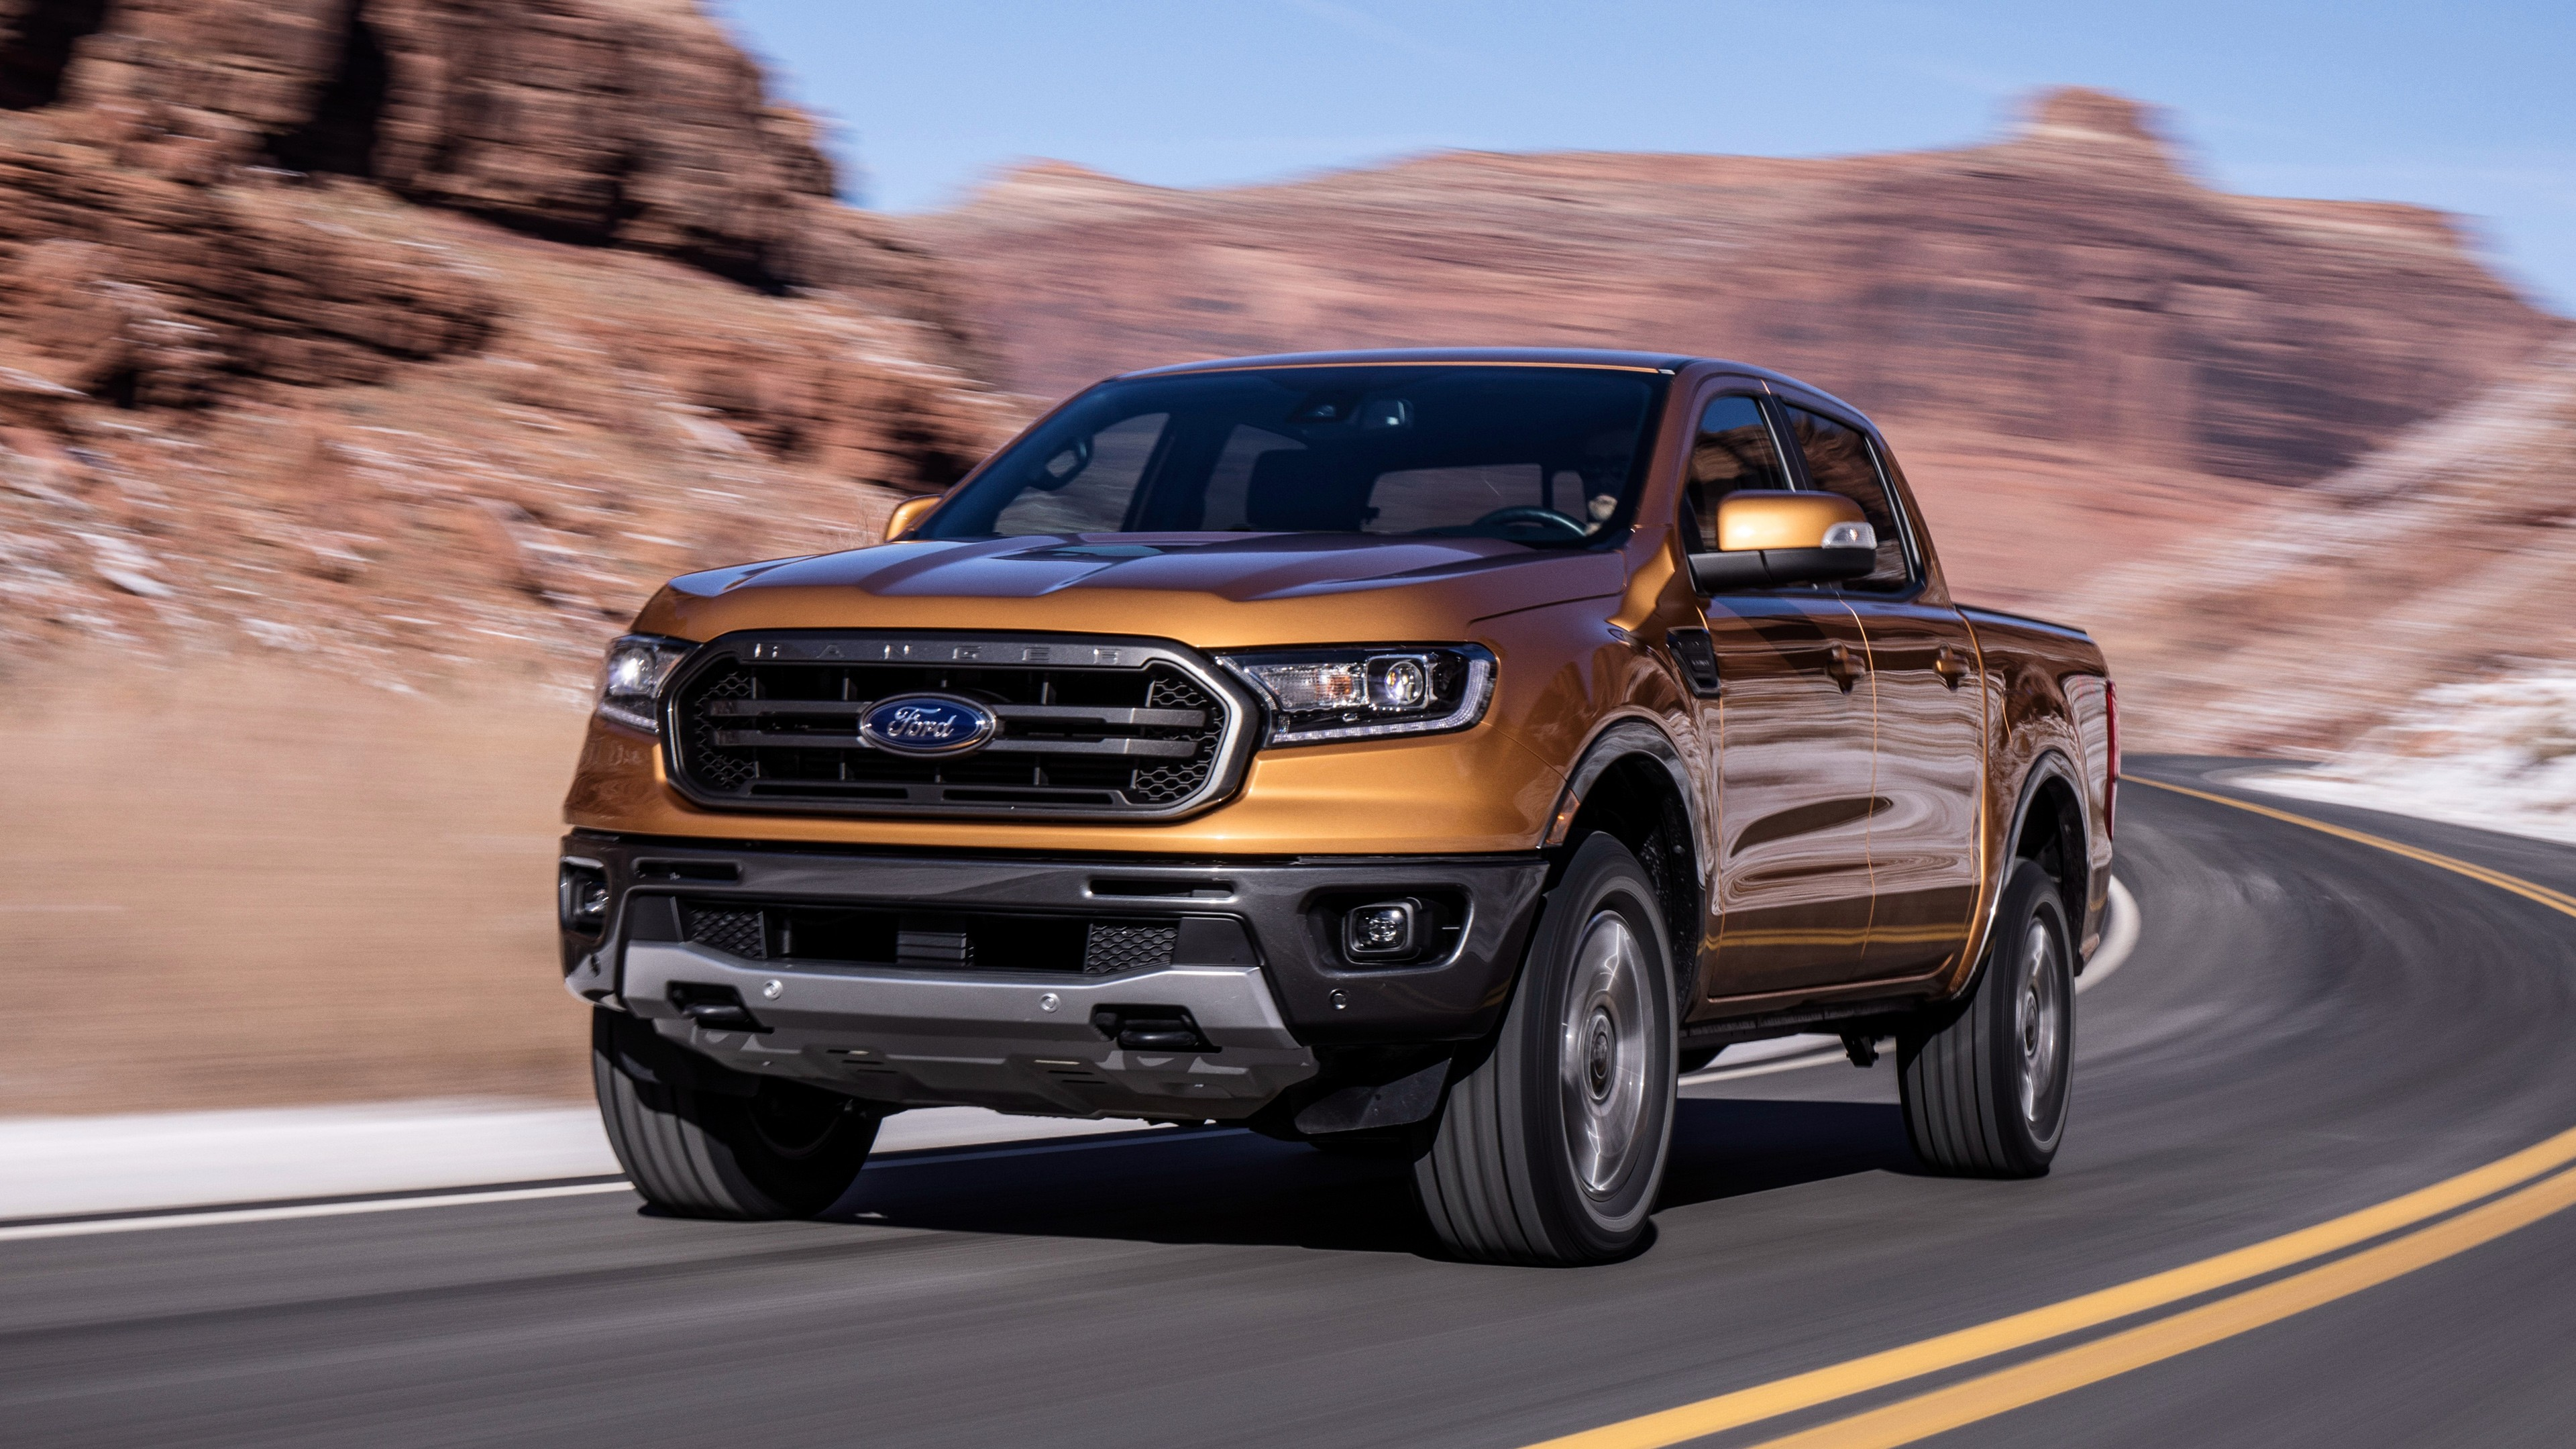 2019 Ford Ranger FX4 Lariat SuperCrew 4K 3 Wallpaper | HD ...